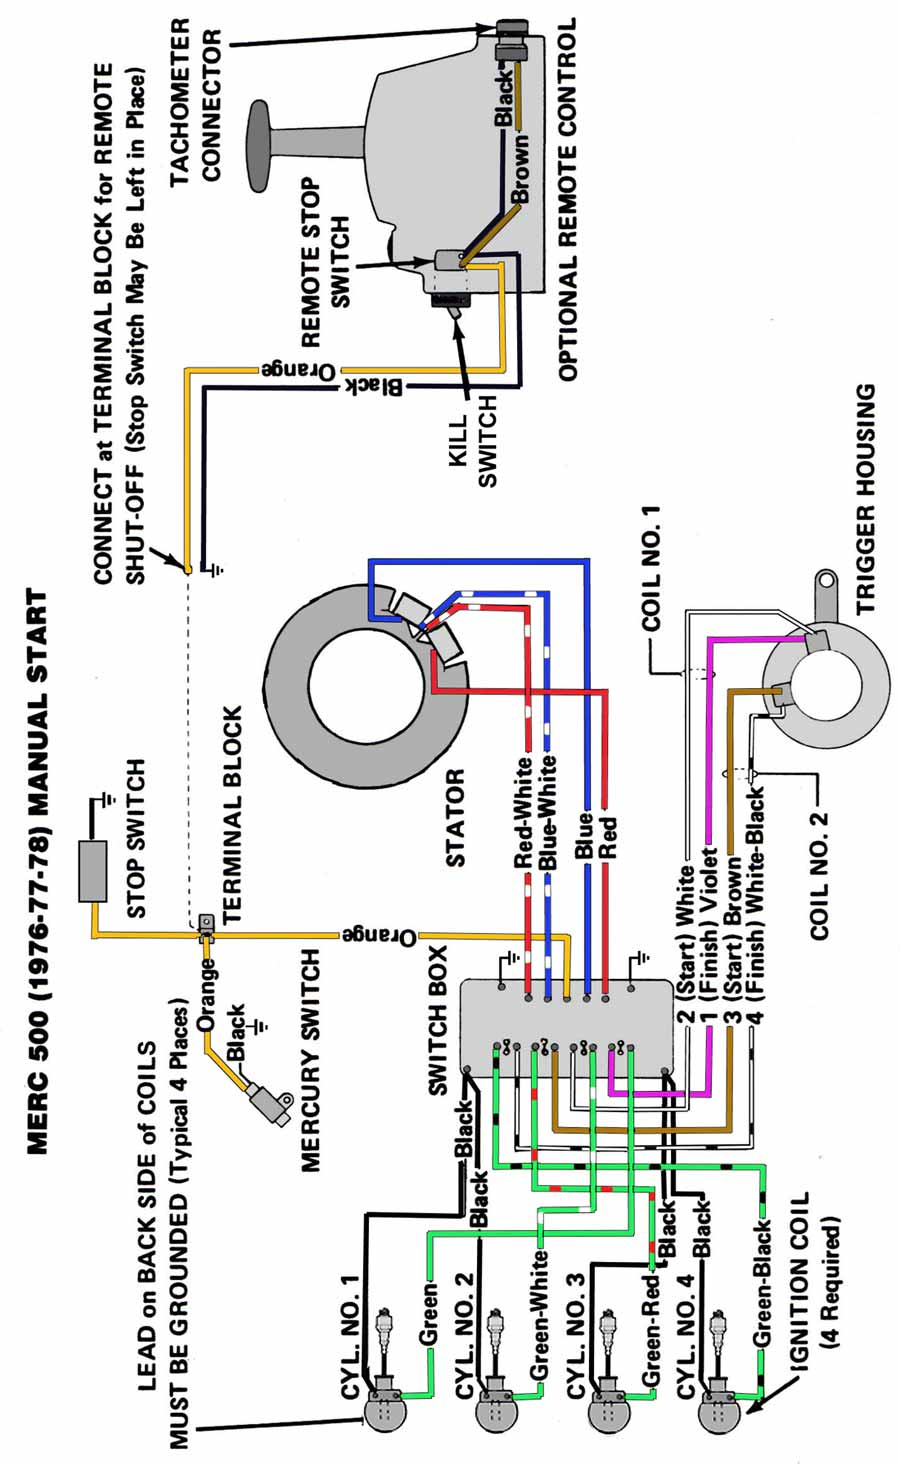 Wiring Diagram For 70 Mercury Outboard Starter - Catalogue ... on